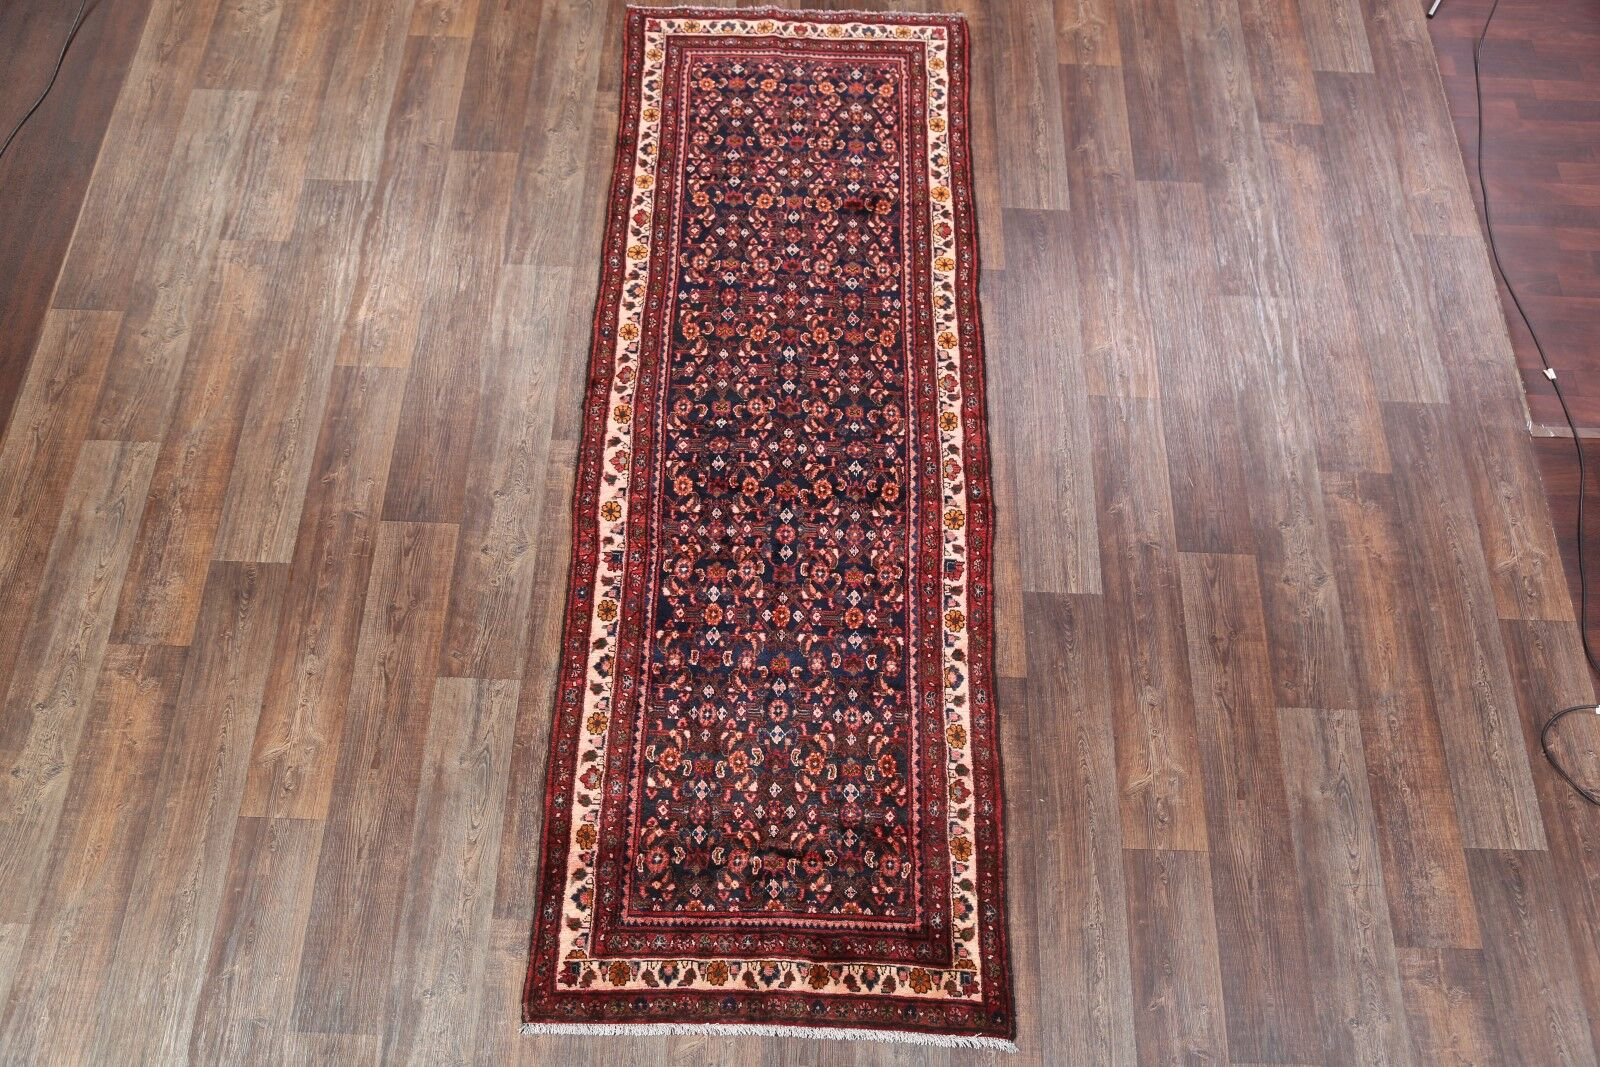 One-of-a-Kind Zanjan Traditional Persian Hand-Knotted 3'6